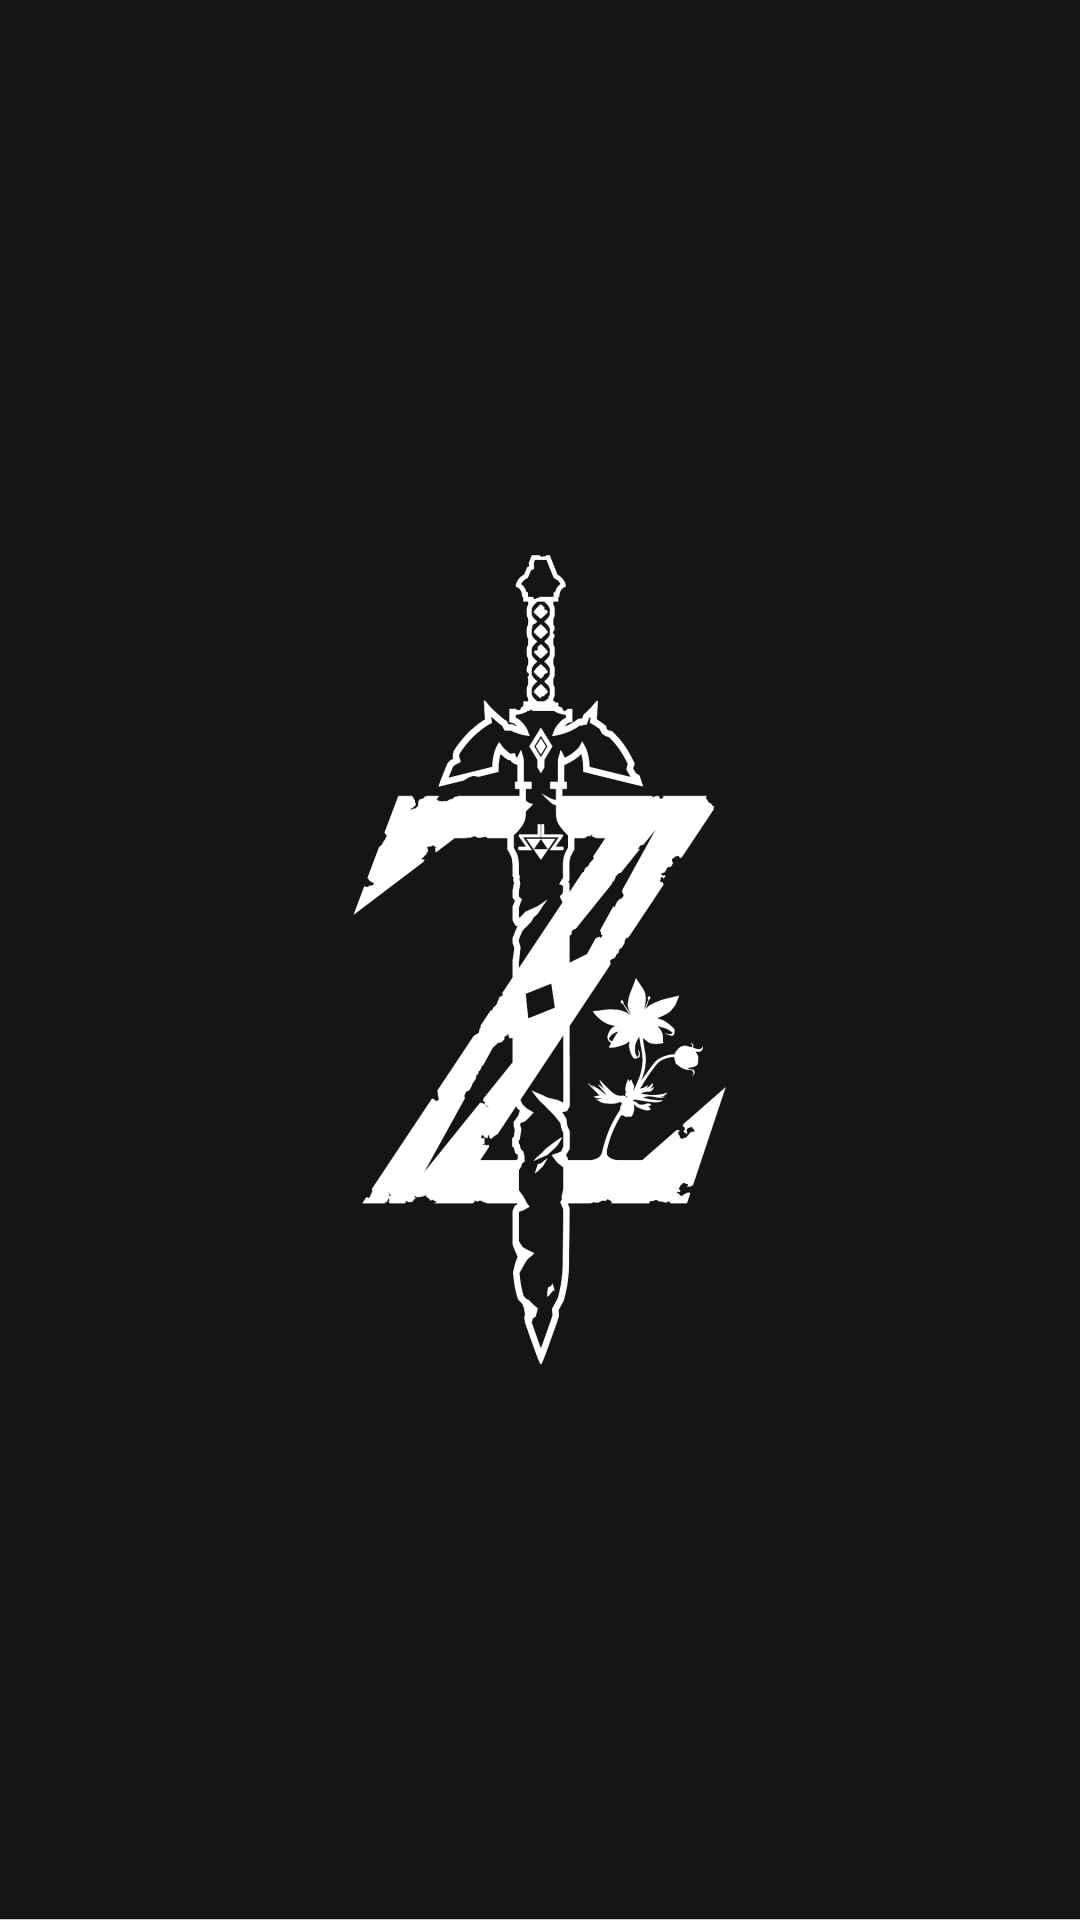 Dark Zelda Wallpaper Logo Wallpapers Android Live The Legend Of